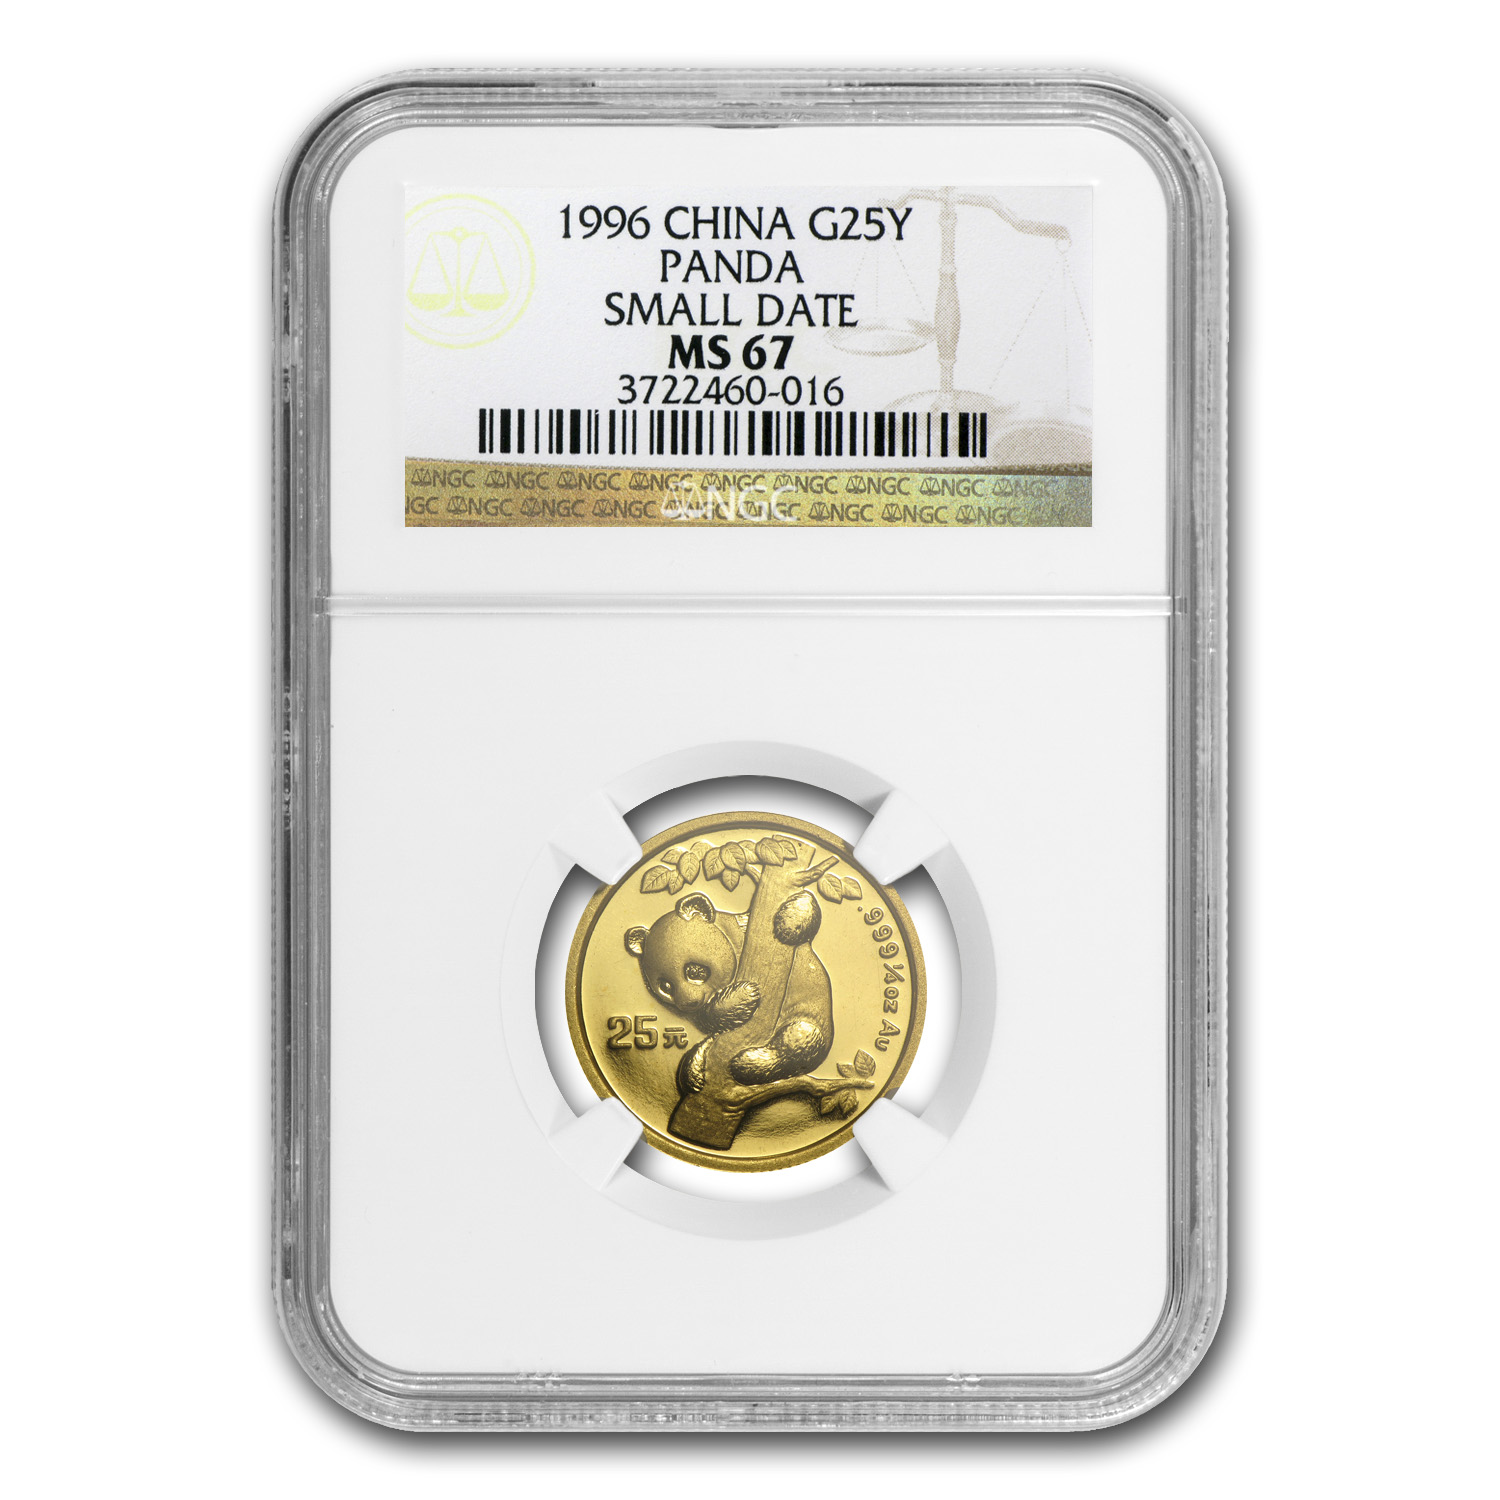 1996 China 1/4 oz Gold Panda Small Date MS-67 NGC